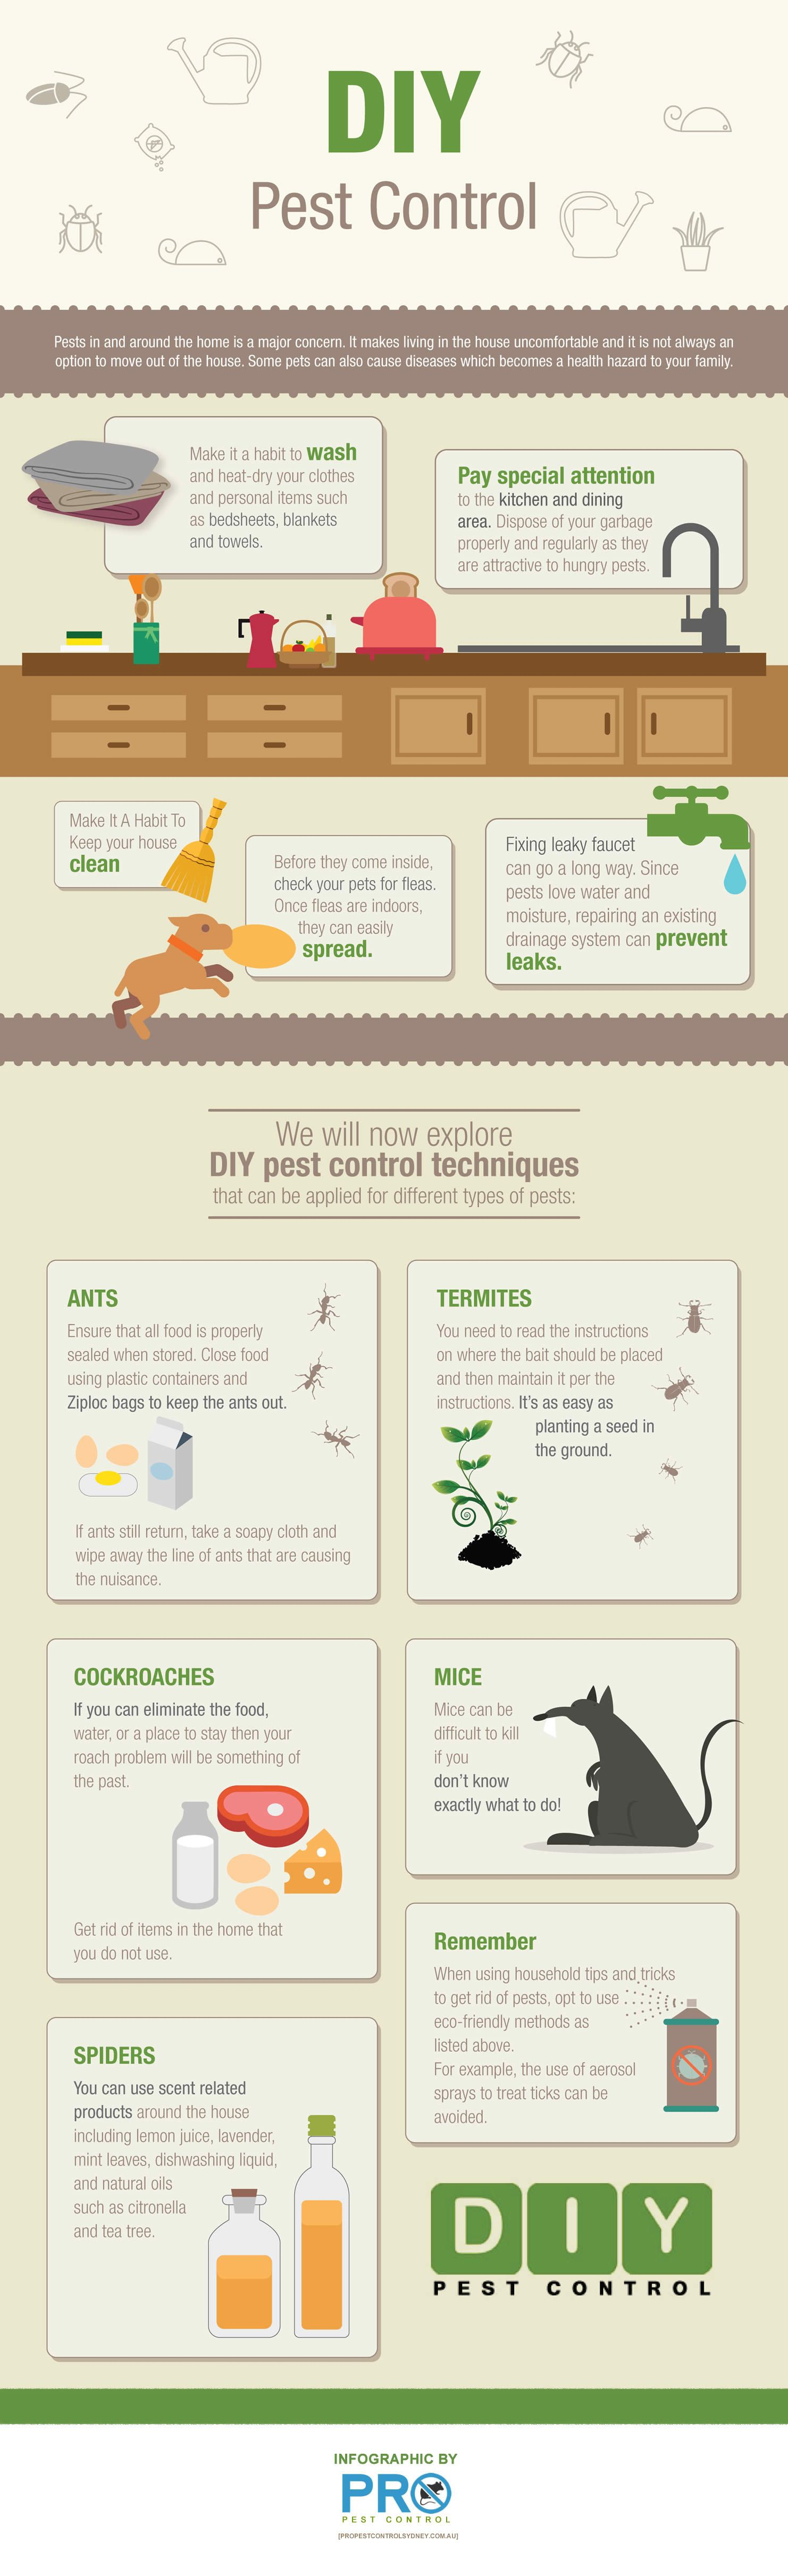 Diy Pest Control Supplies Secrets To A Pest Free Home Infographic Diy Ideas Infographics